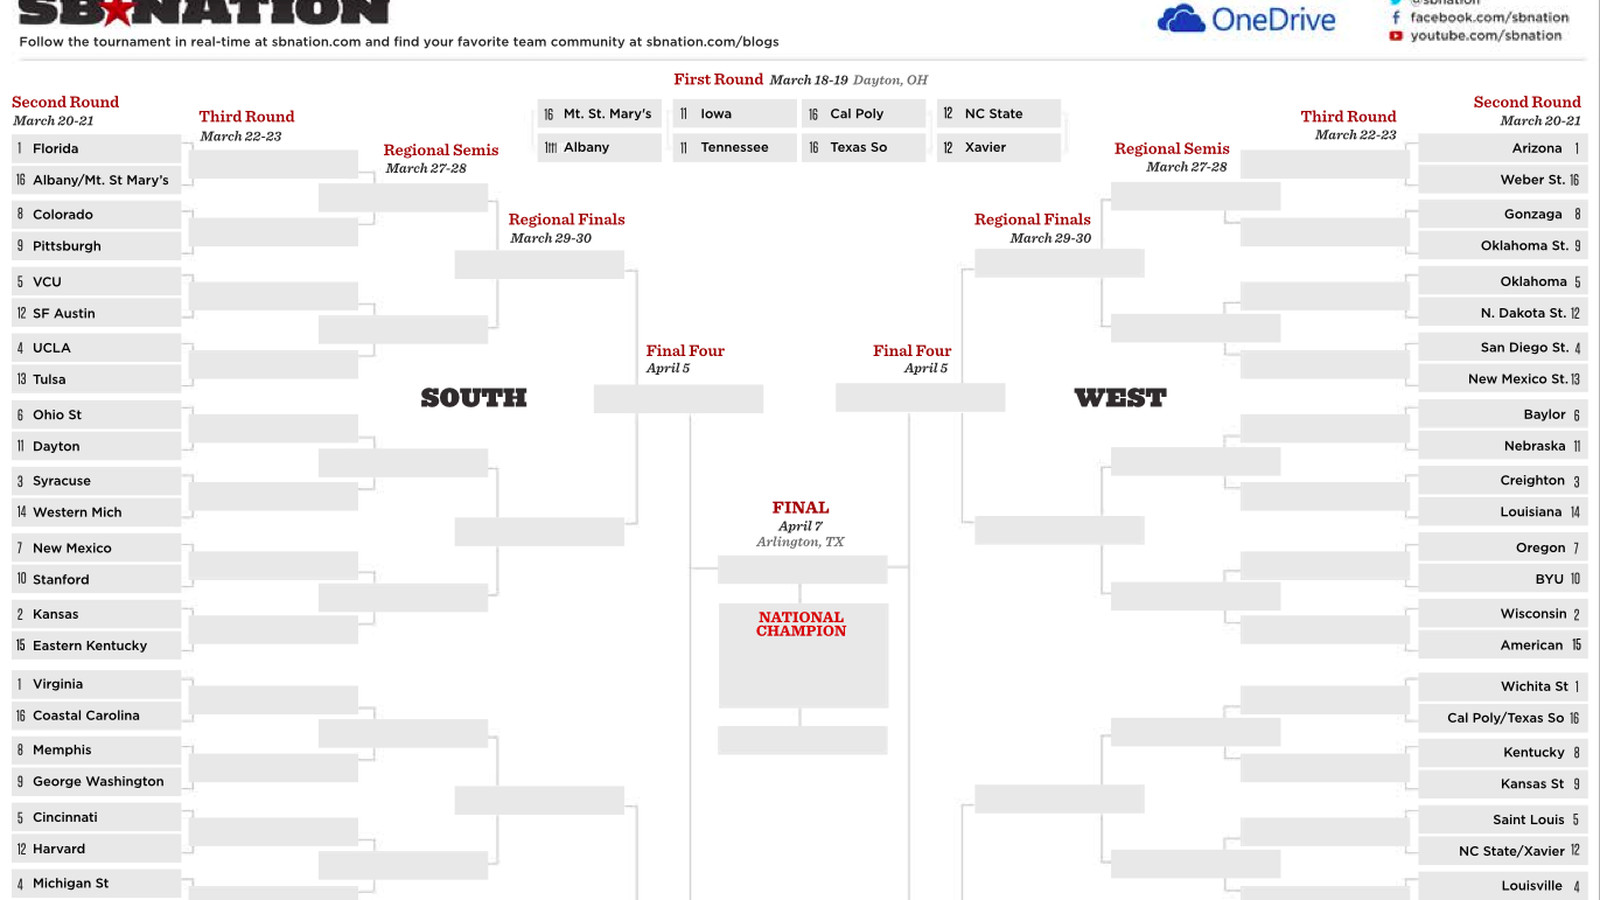 Printable NCAA bracket 2014: Fill out your picks with our